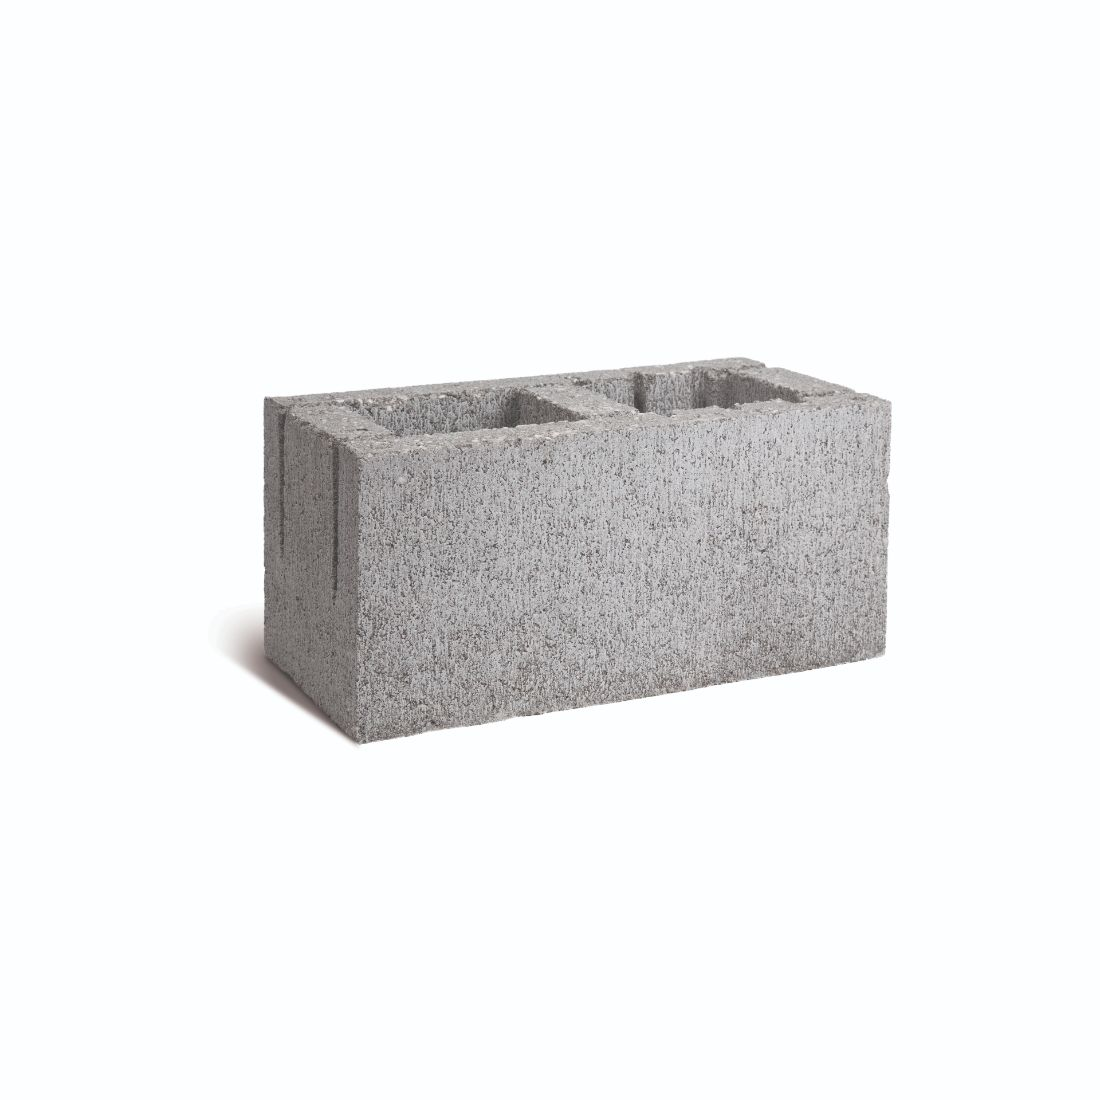 20.15 Corner Bond Beam Block 390 x 190 x 190mm